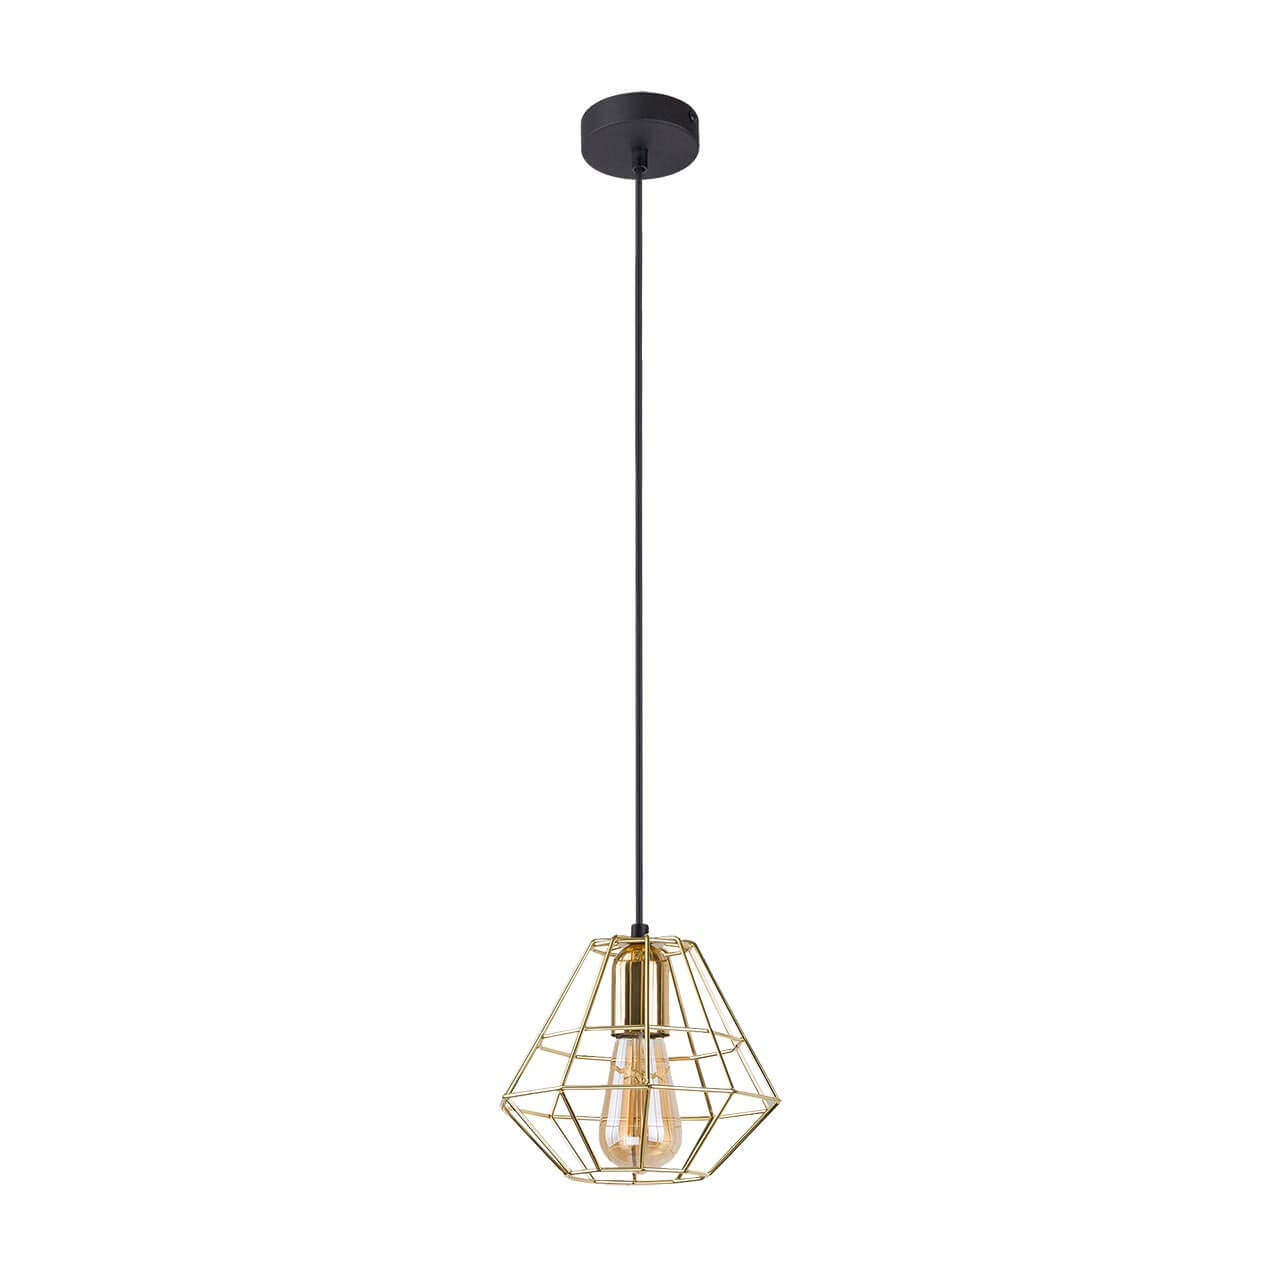 Светильник TK Lighting 2575 Diamond Gold